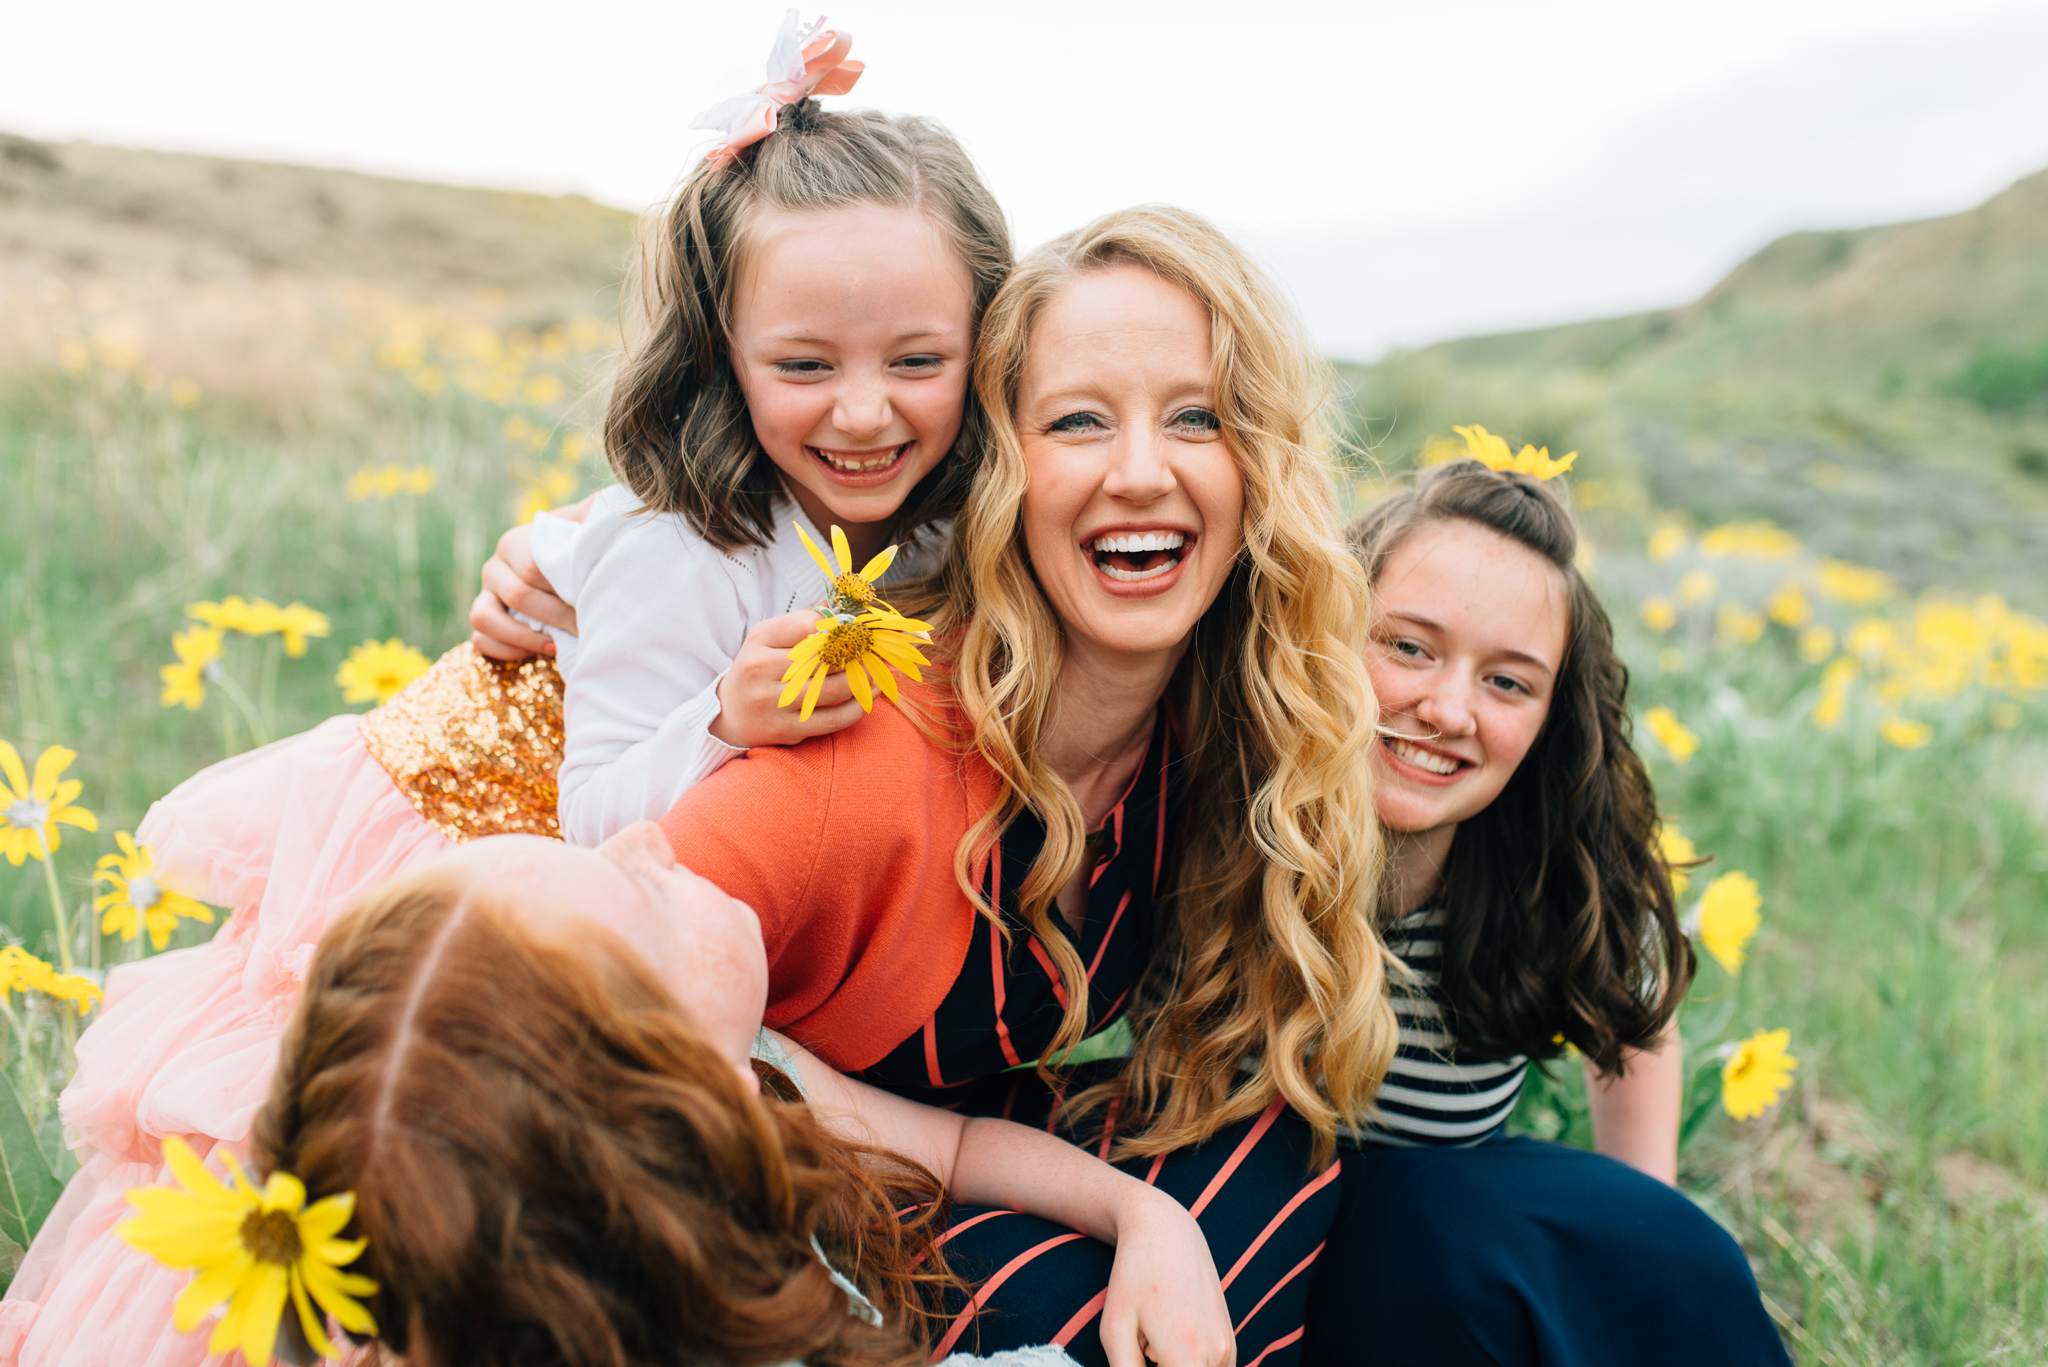 boise family photographer | family in the foothills | Mom and her daughters in the wild flowers